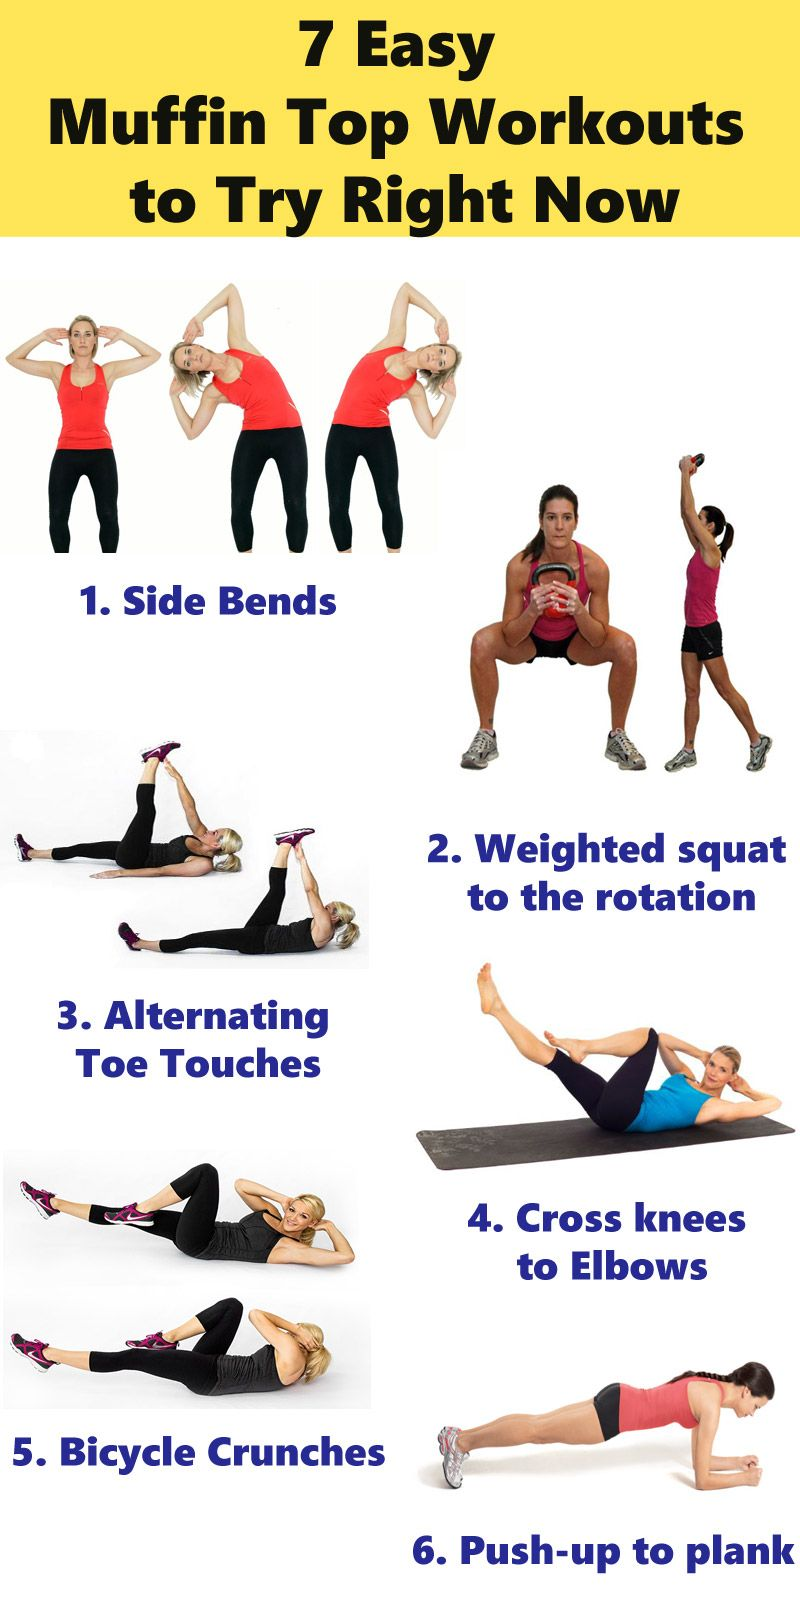 How To Get Rid of Muffin Top -12 Ways To Lose Your Muffin Top